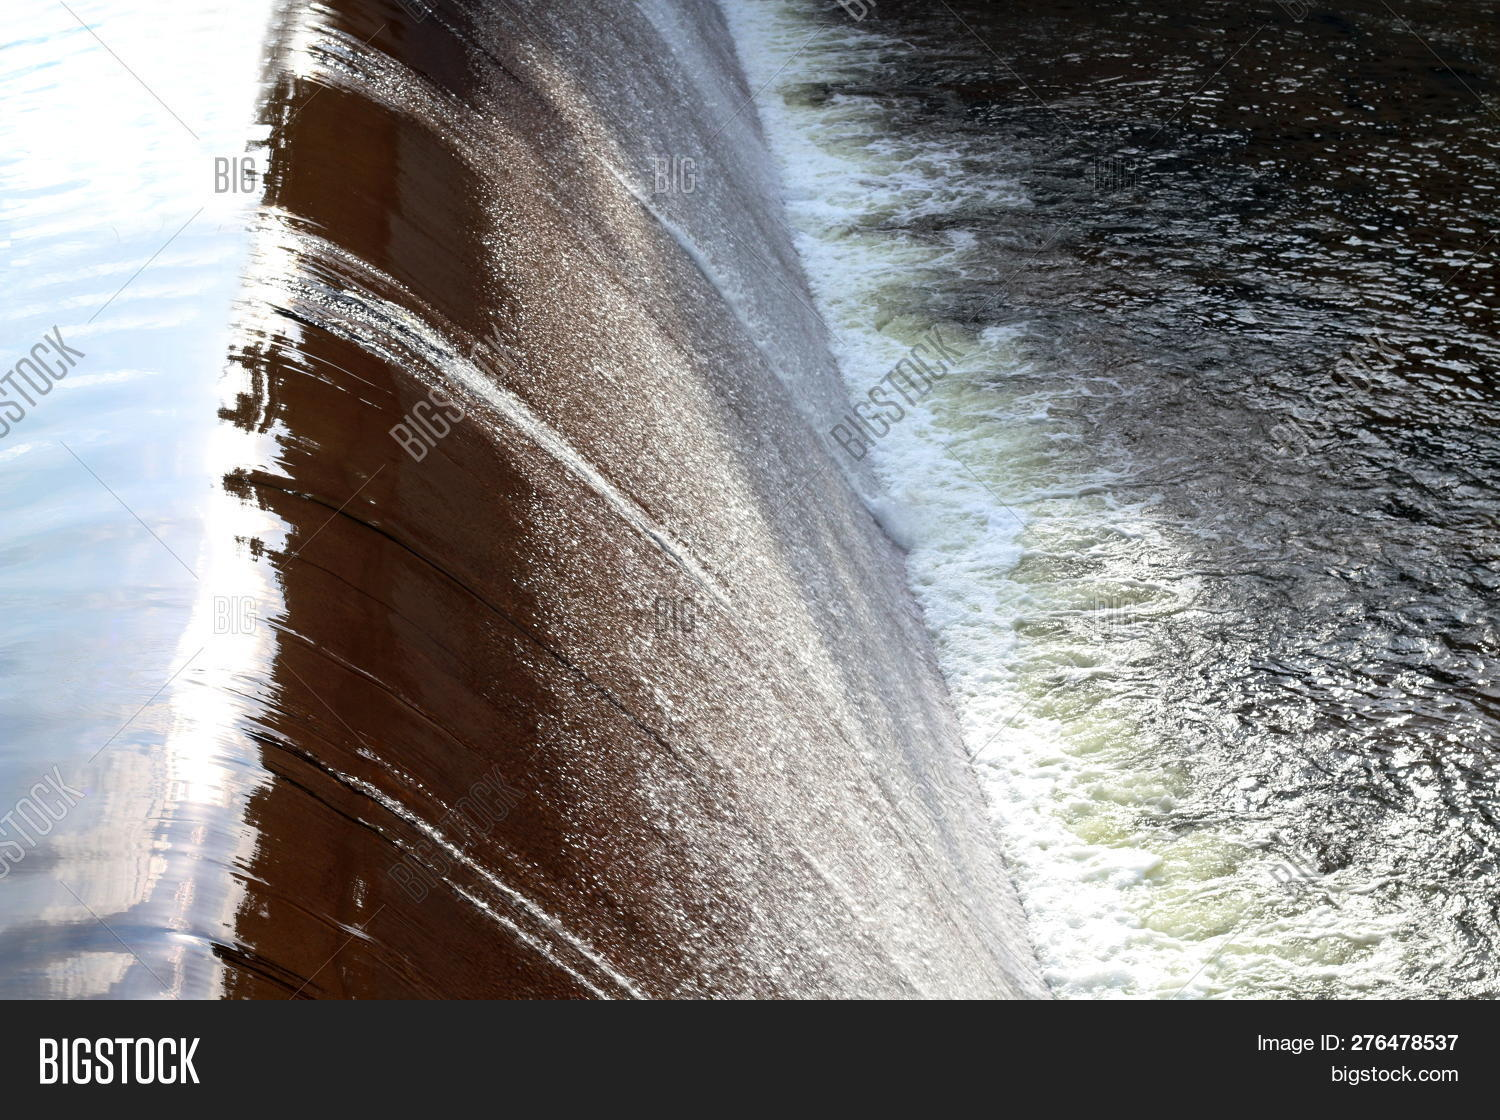 Dam Water Flow, Surface Flow, Flowing Water At Small Water Reservoir, Rural Water Retention Dam, Spl